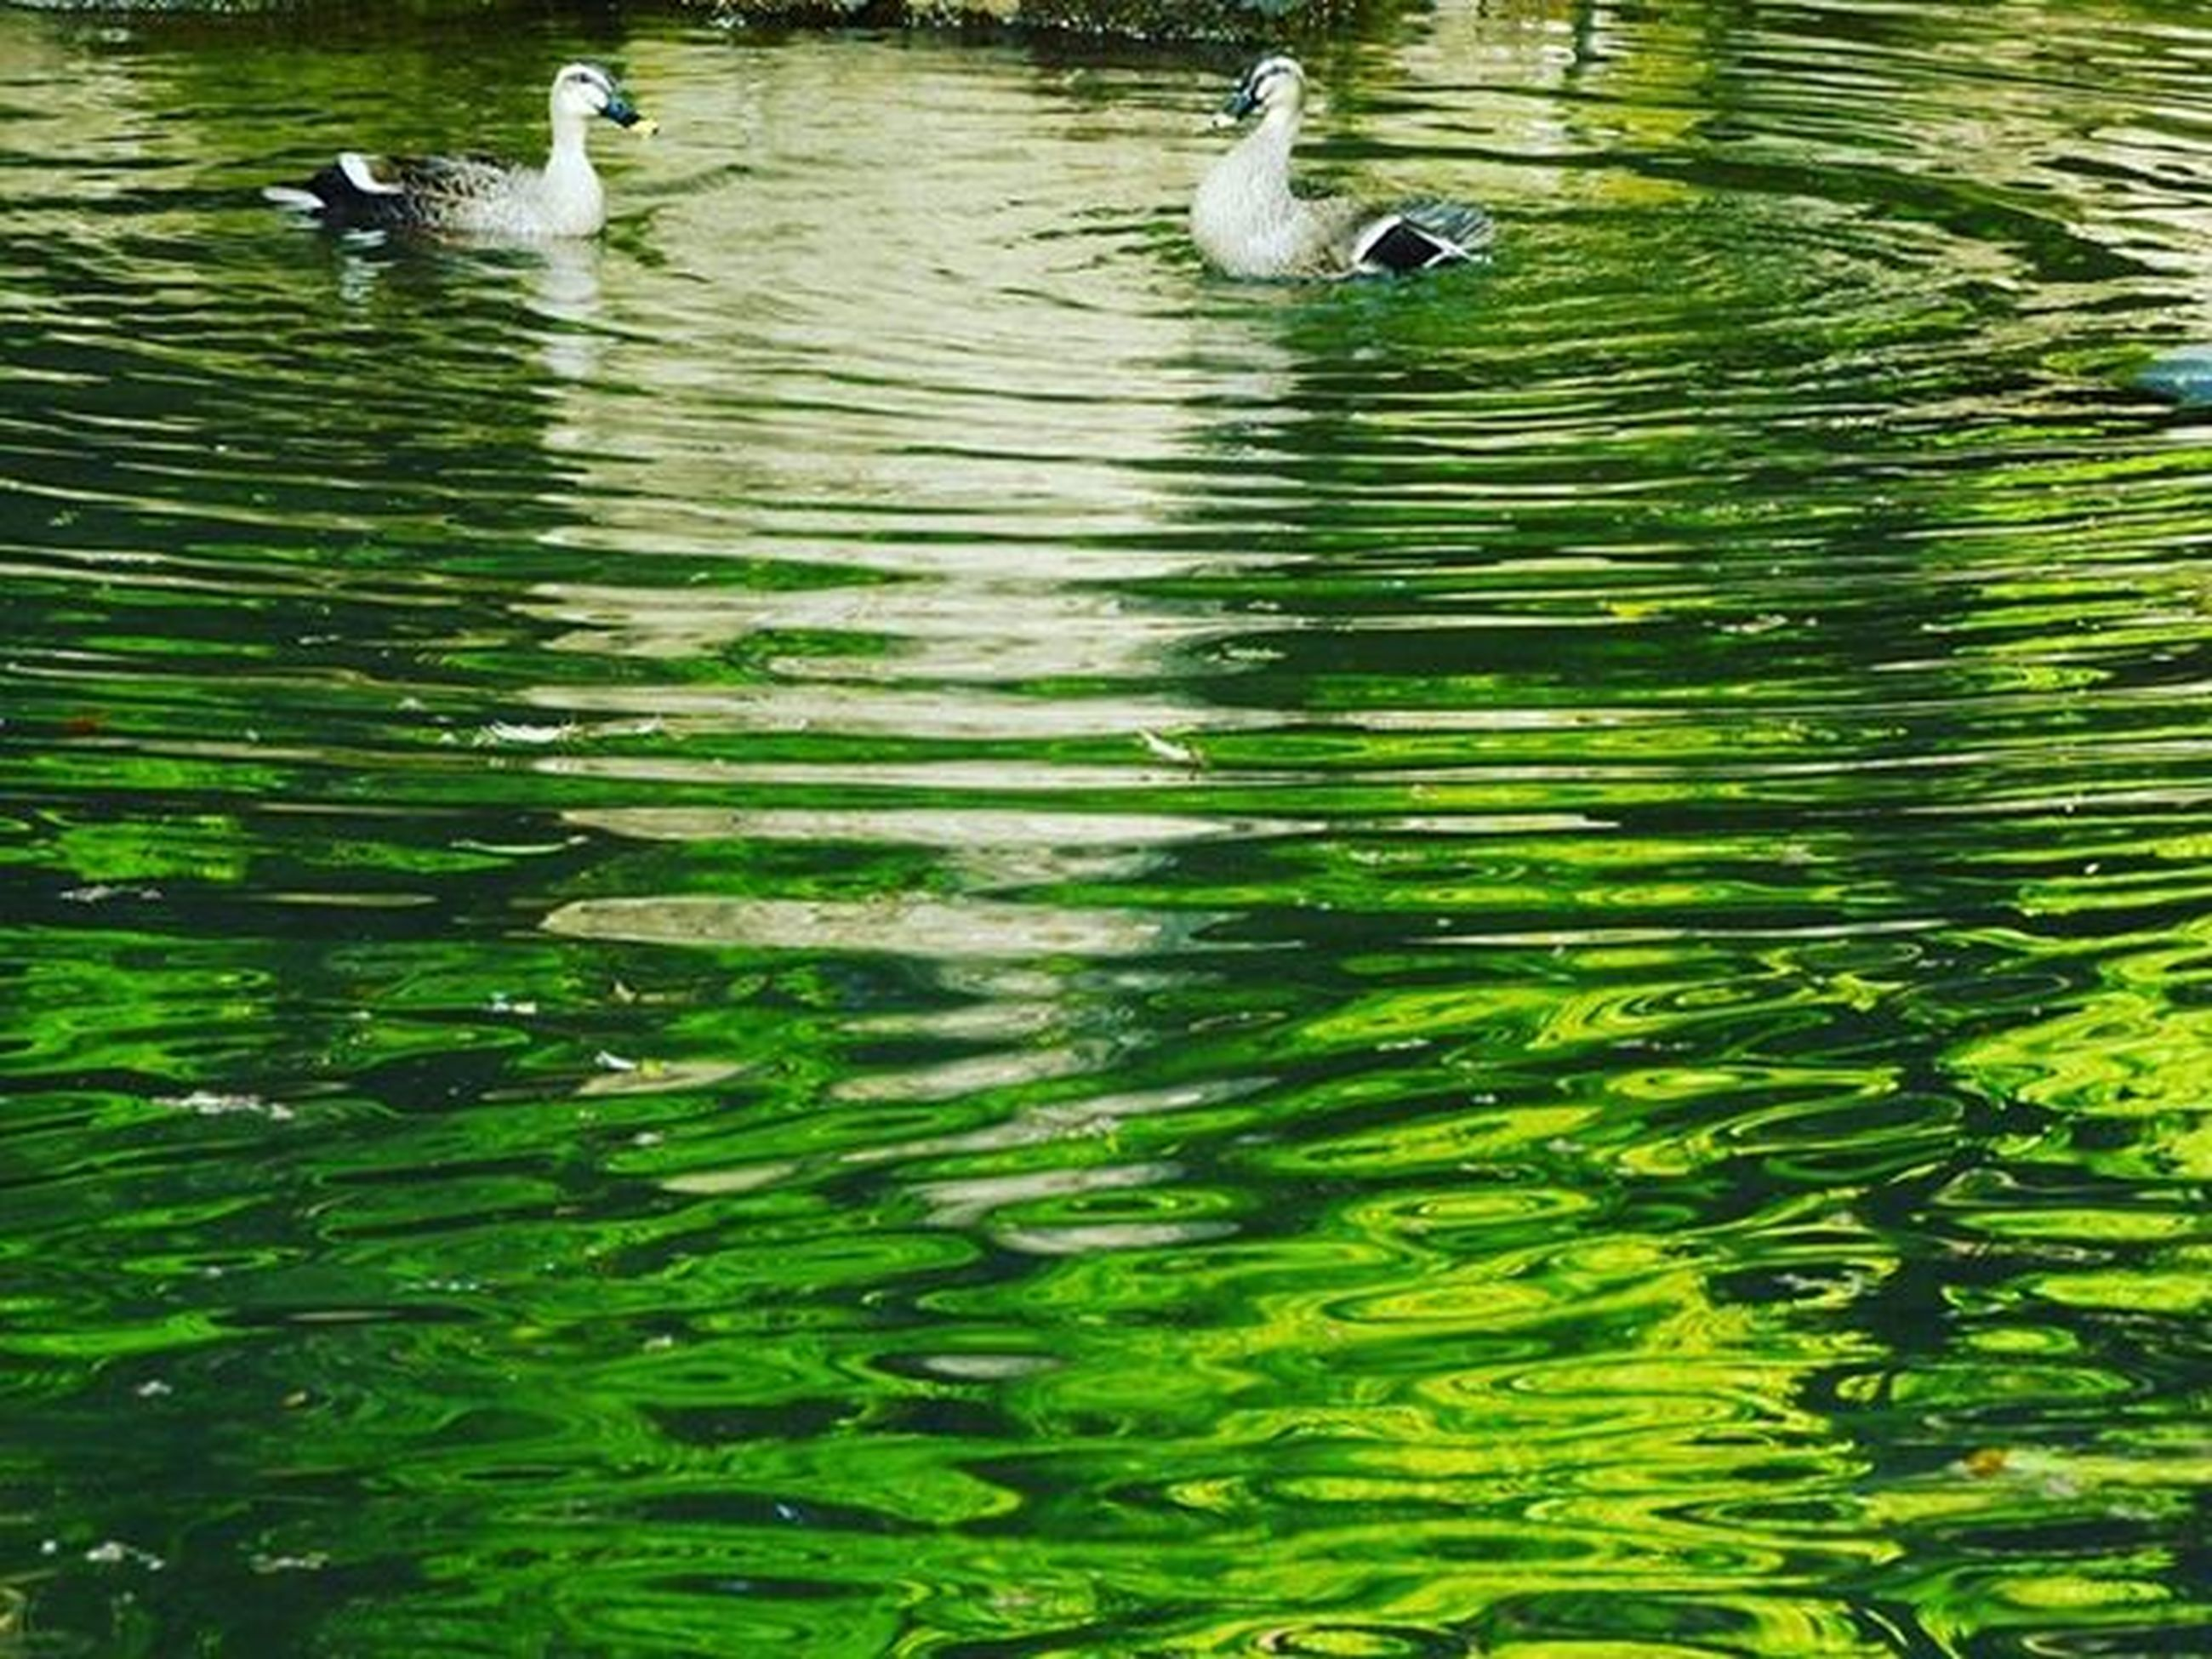 animal themes, bird, animals in the wild, water, wildlife, lake, swimming, duck, water bird, reflection, high angle view, swan, waterfront, rippled, one animal, two animals, nature, floating on water, medium group of animals, outdoors